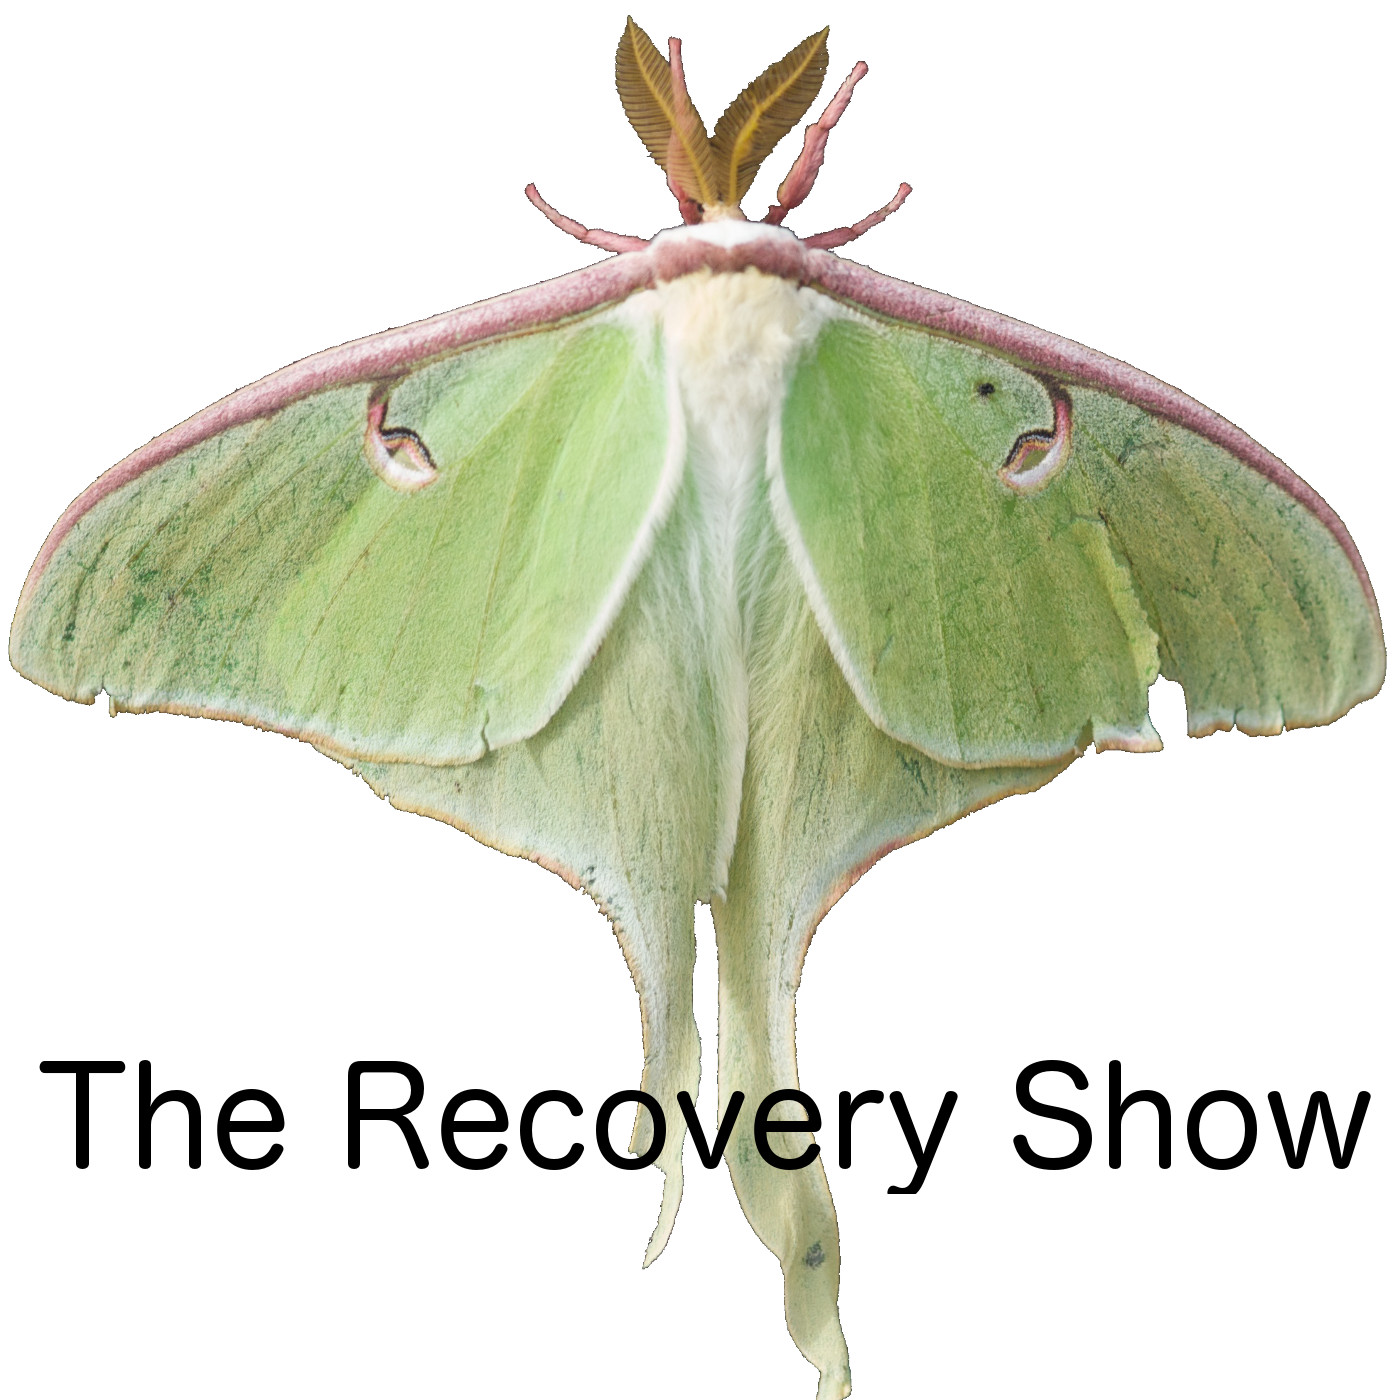 The Recovery Show » Finding serenity through 12 step recovery in Al-Anon – a podcast